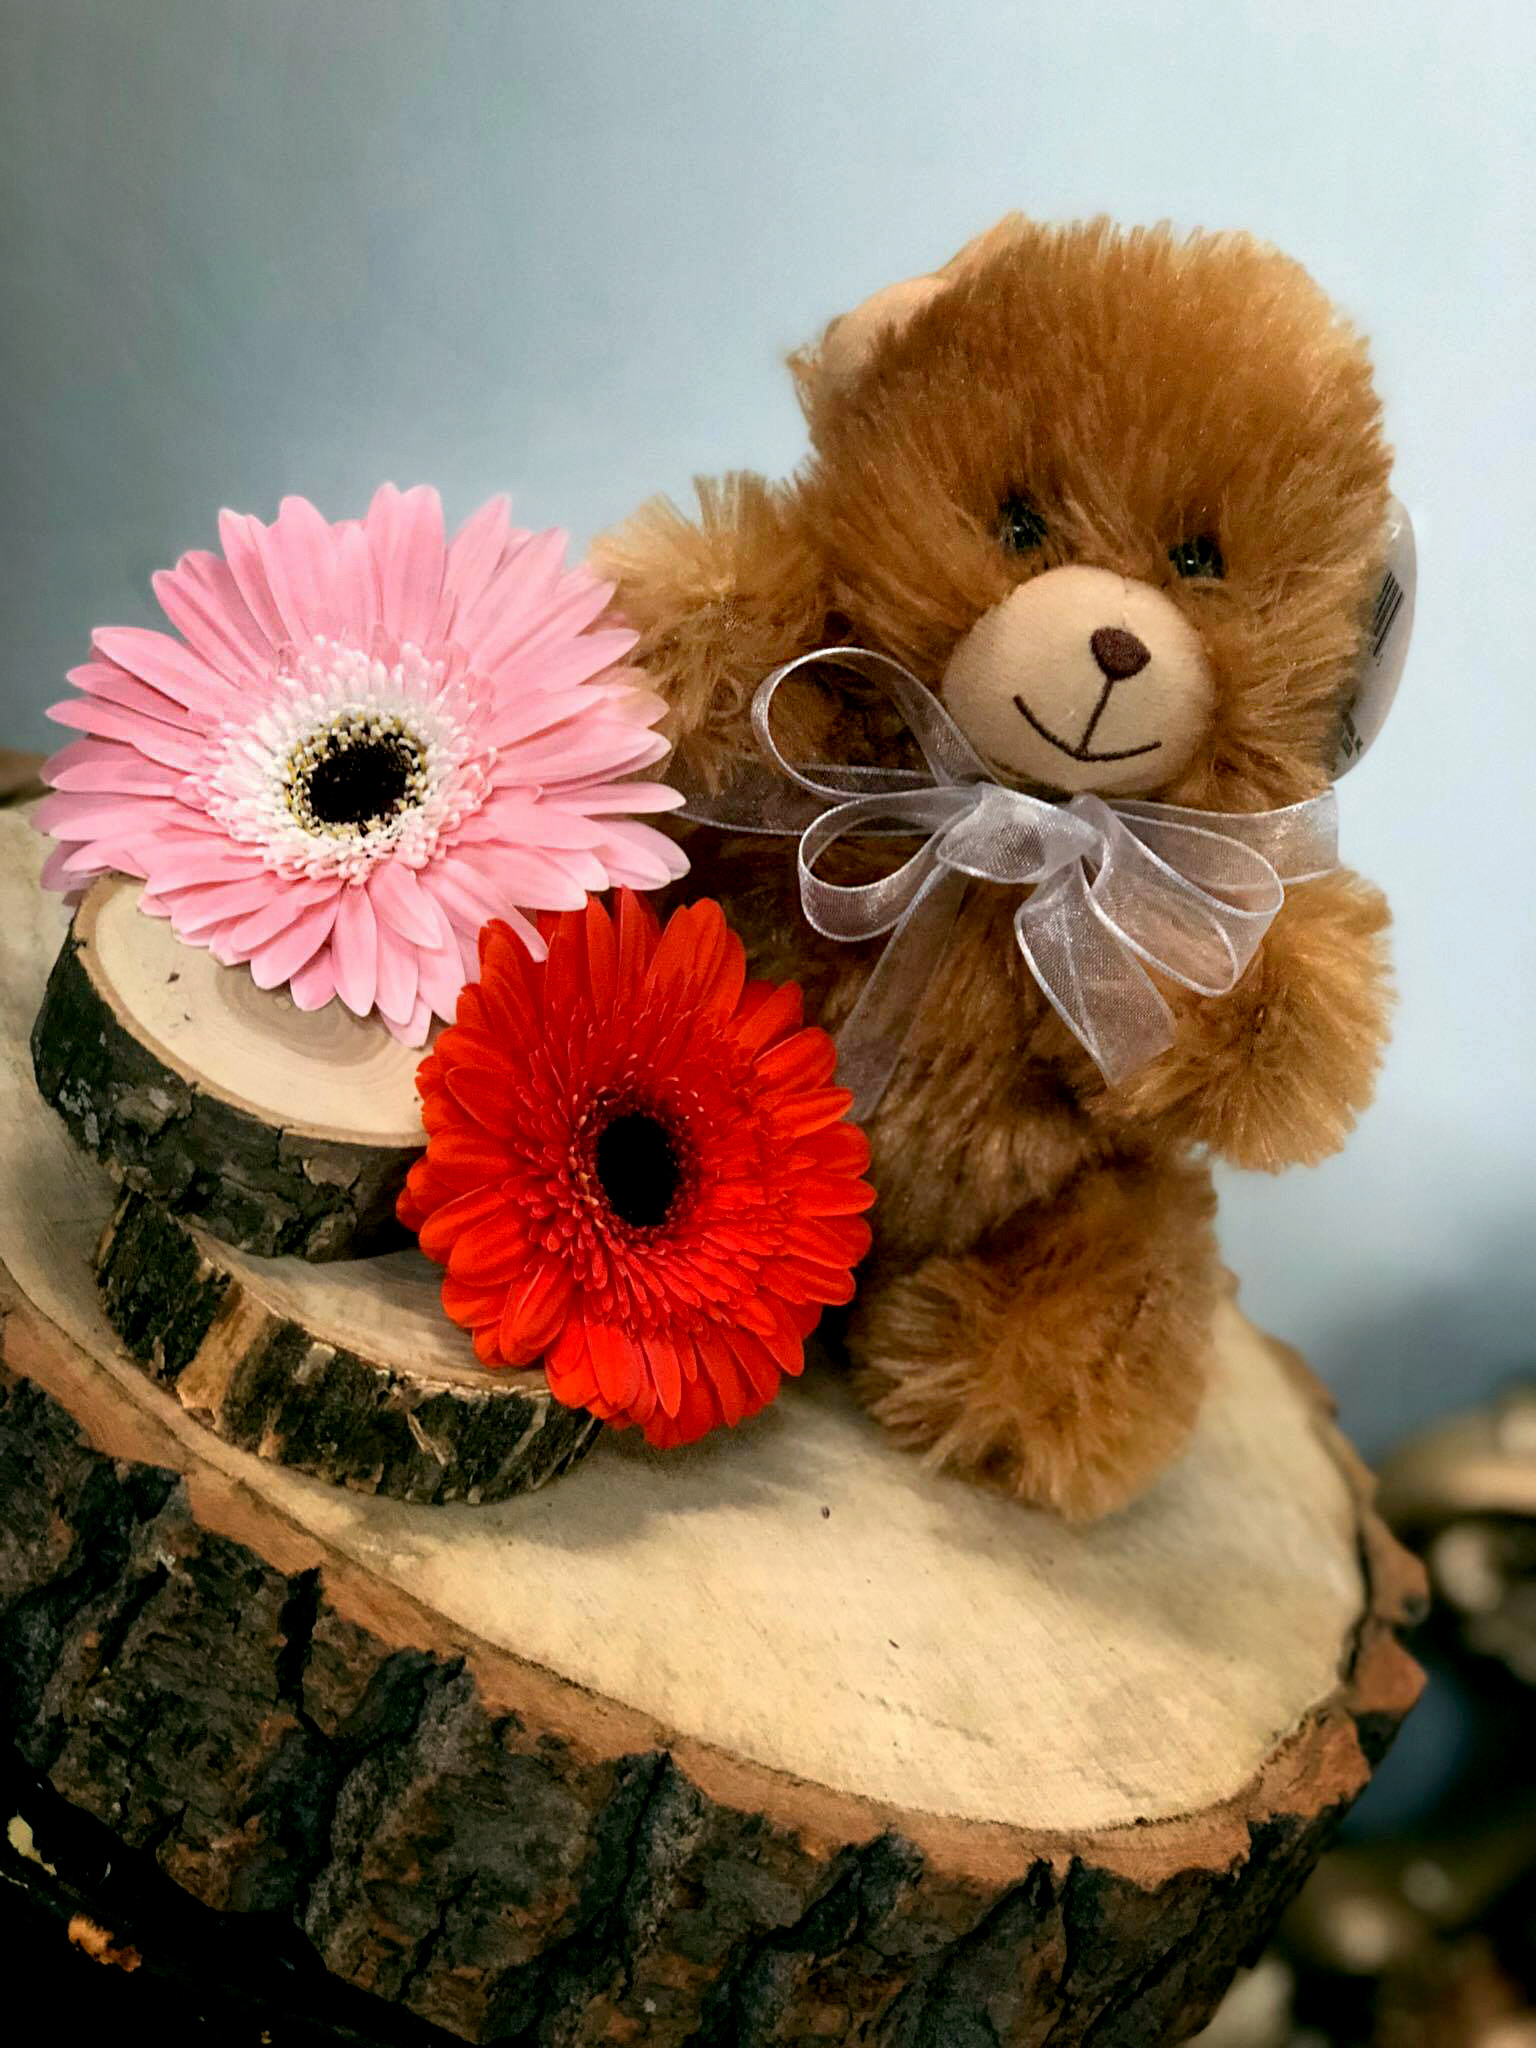 Stuffed Animals - Click Here To Learn More